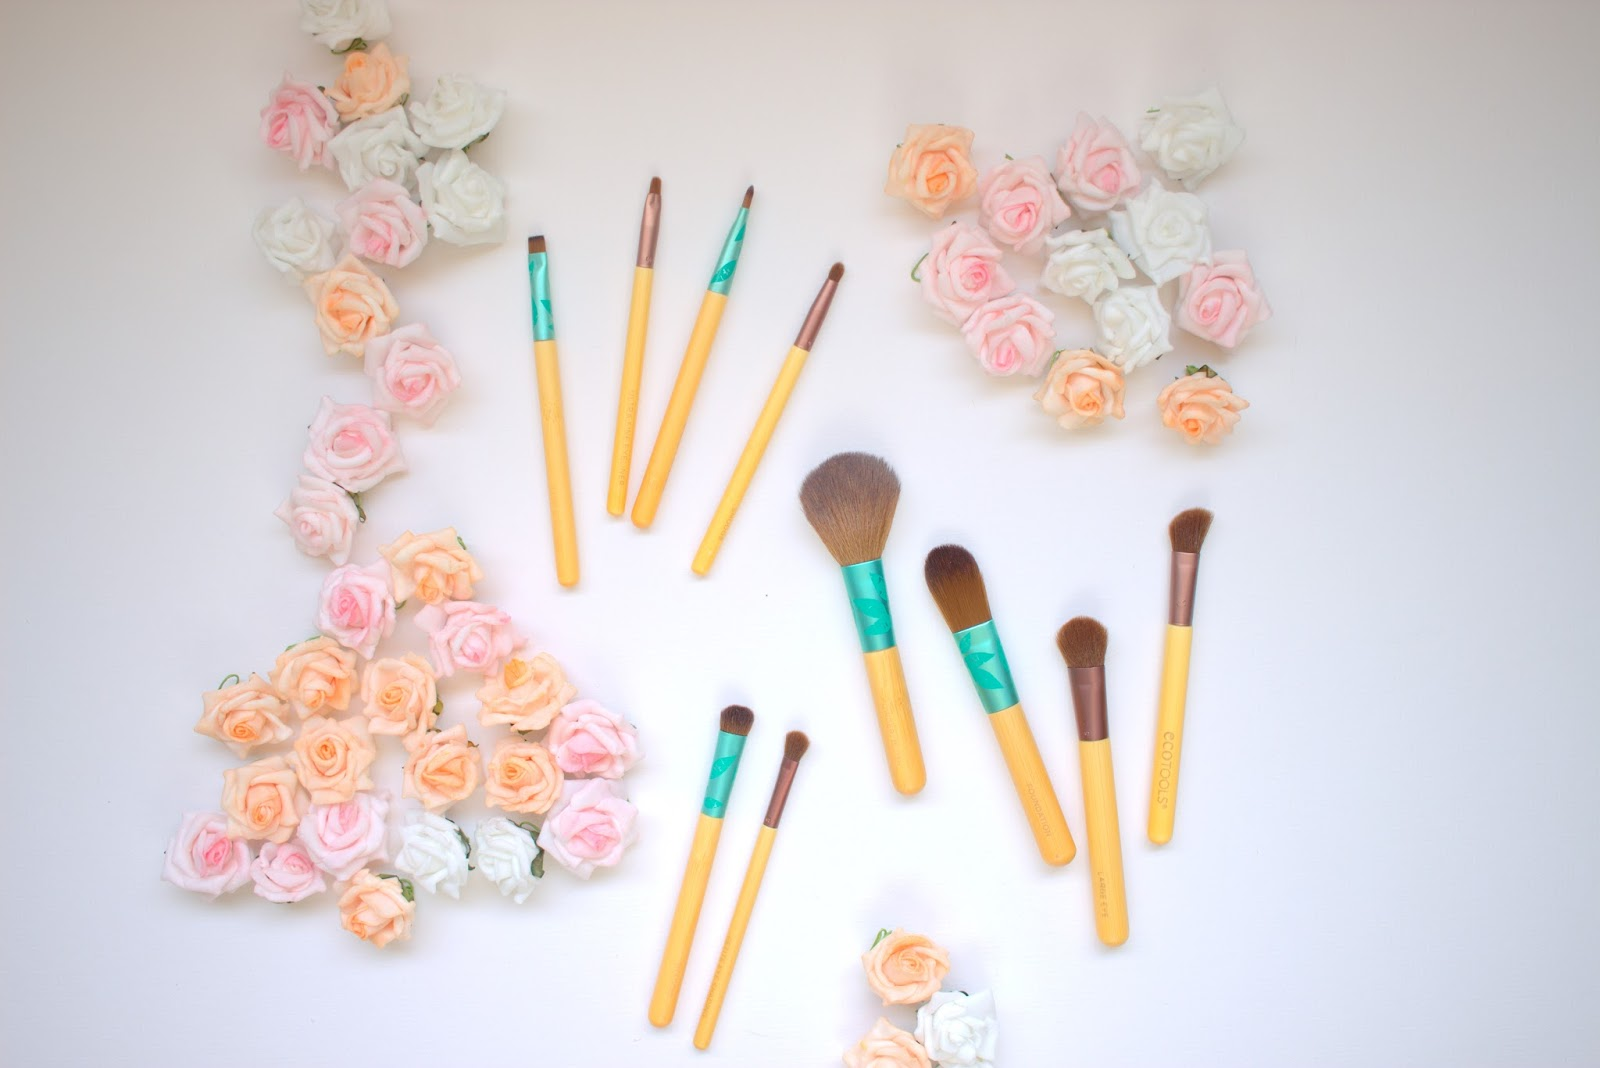 ecotools makeup brushes vegan all natural non toxic